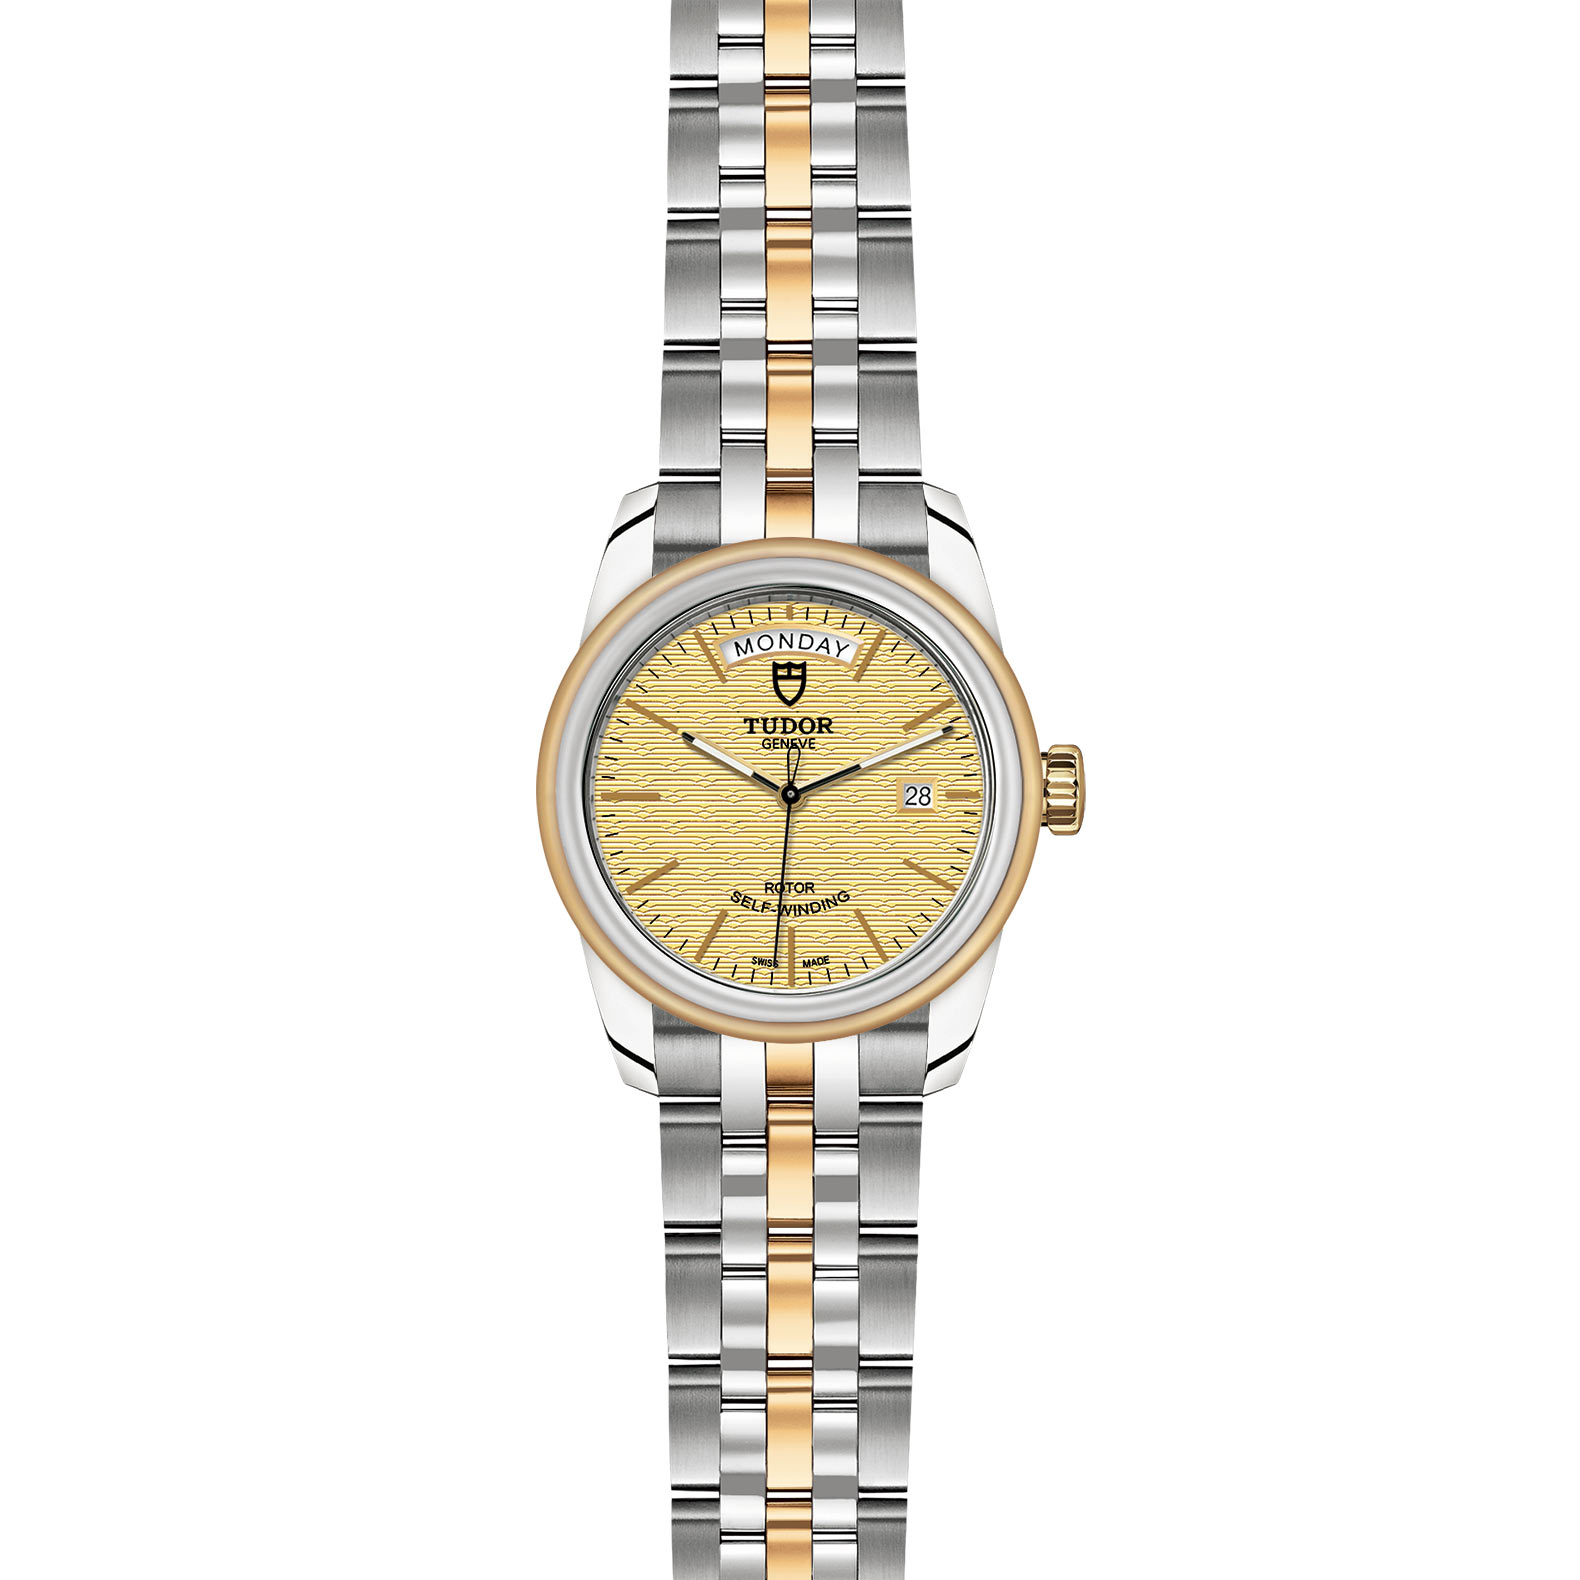 TUDOR Glamour Date Day M56003 0003 Frontfacing